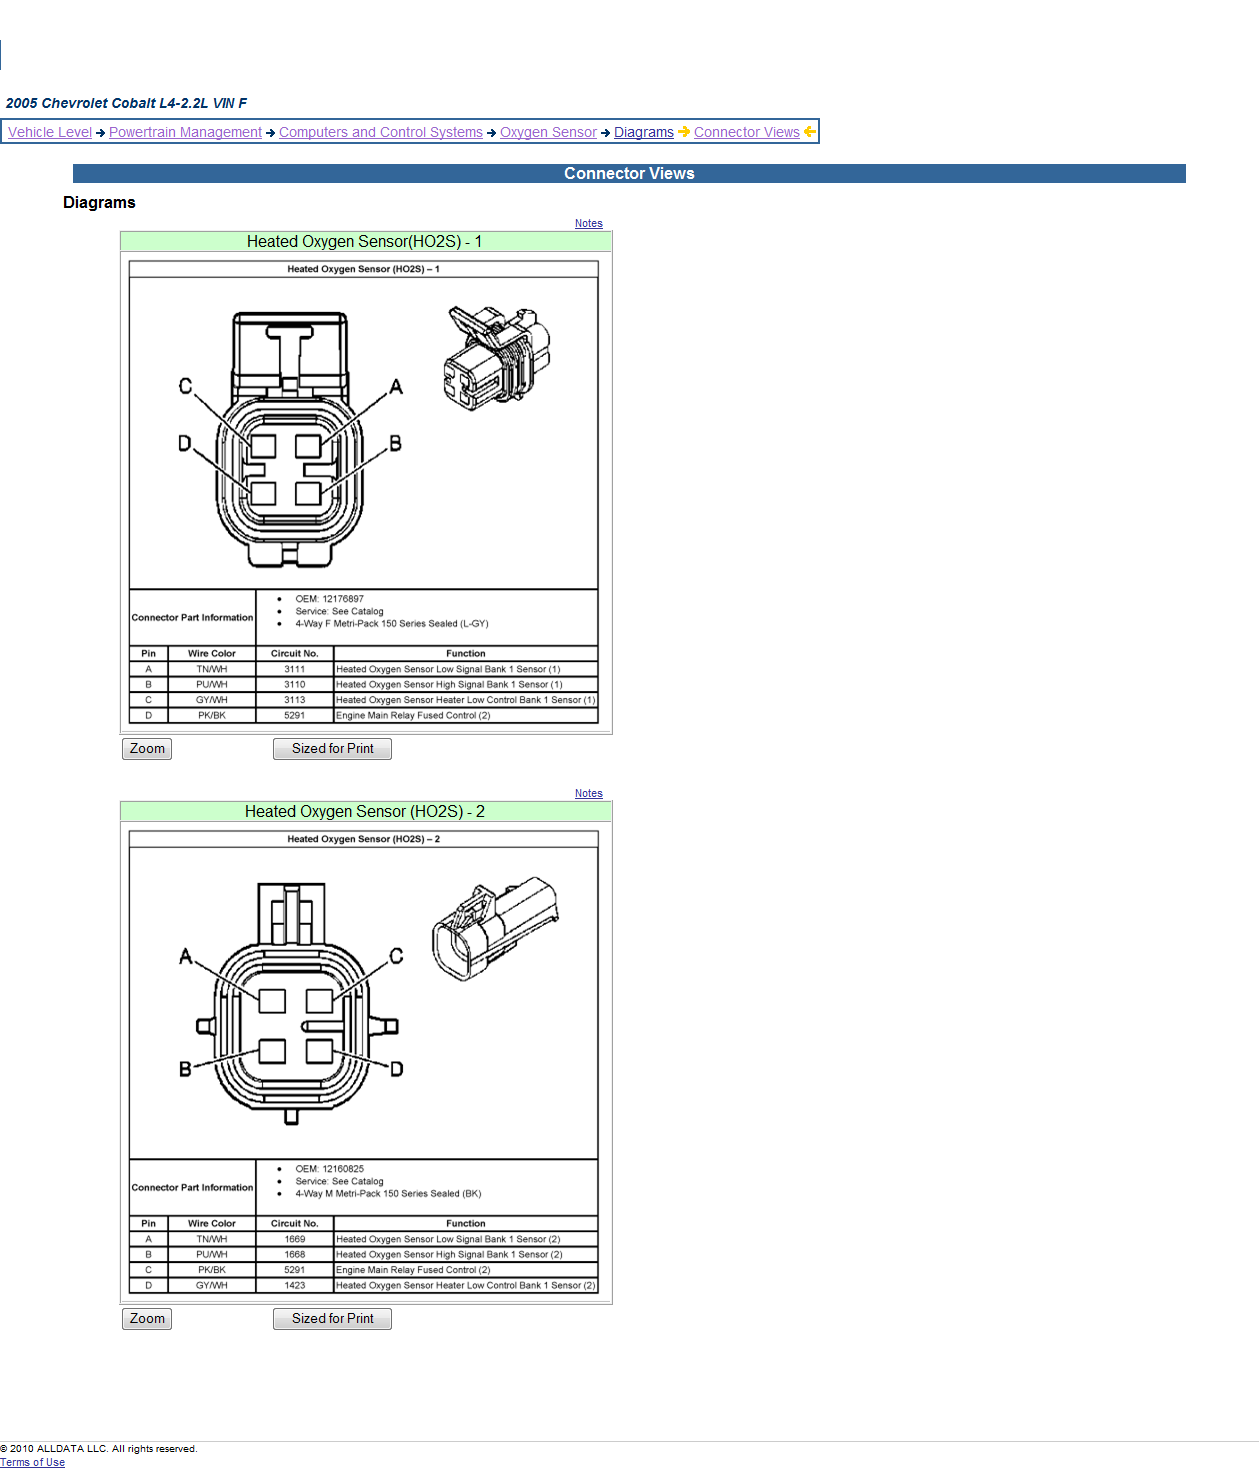 a4deda12a4f6d49137b2c3198e0ce0ff 05 f250 o2 sensor wiring diagram o2 sensor wiring diagram chevy 4 wire o2 sensor diagram at bayanpartner.co